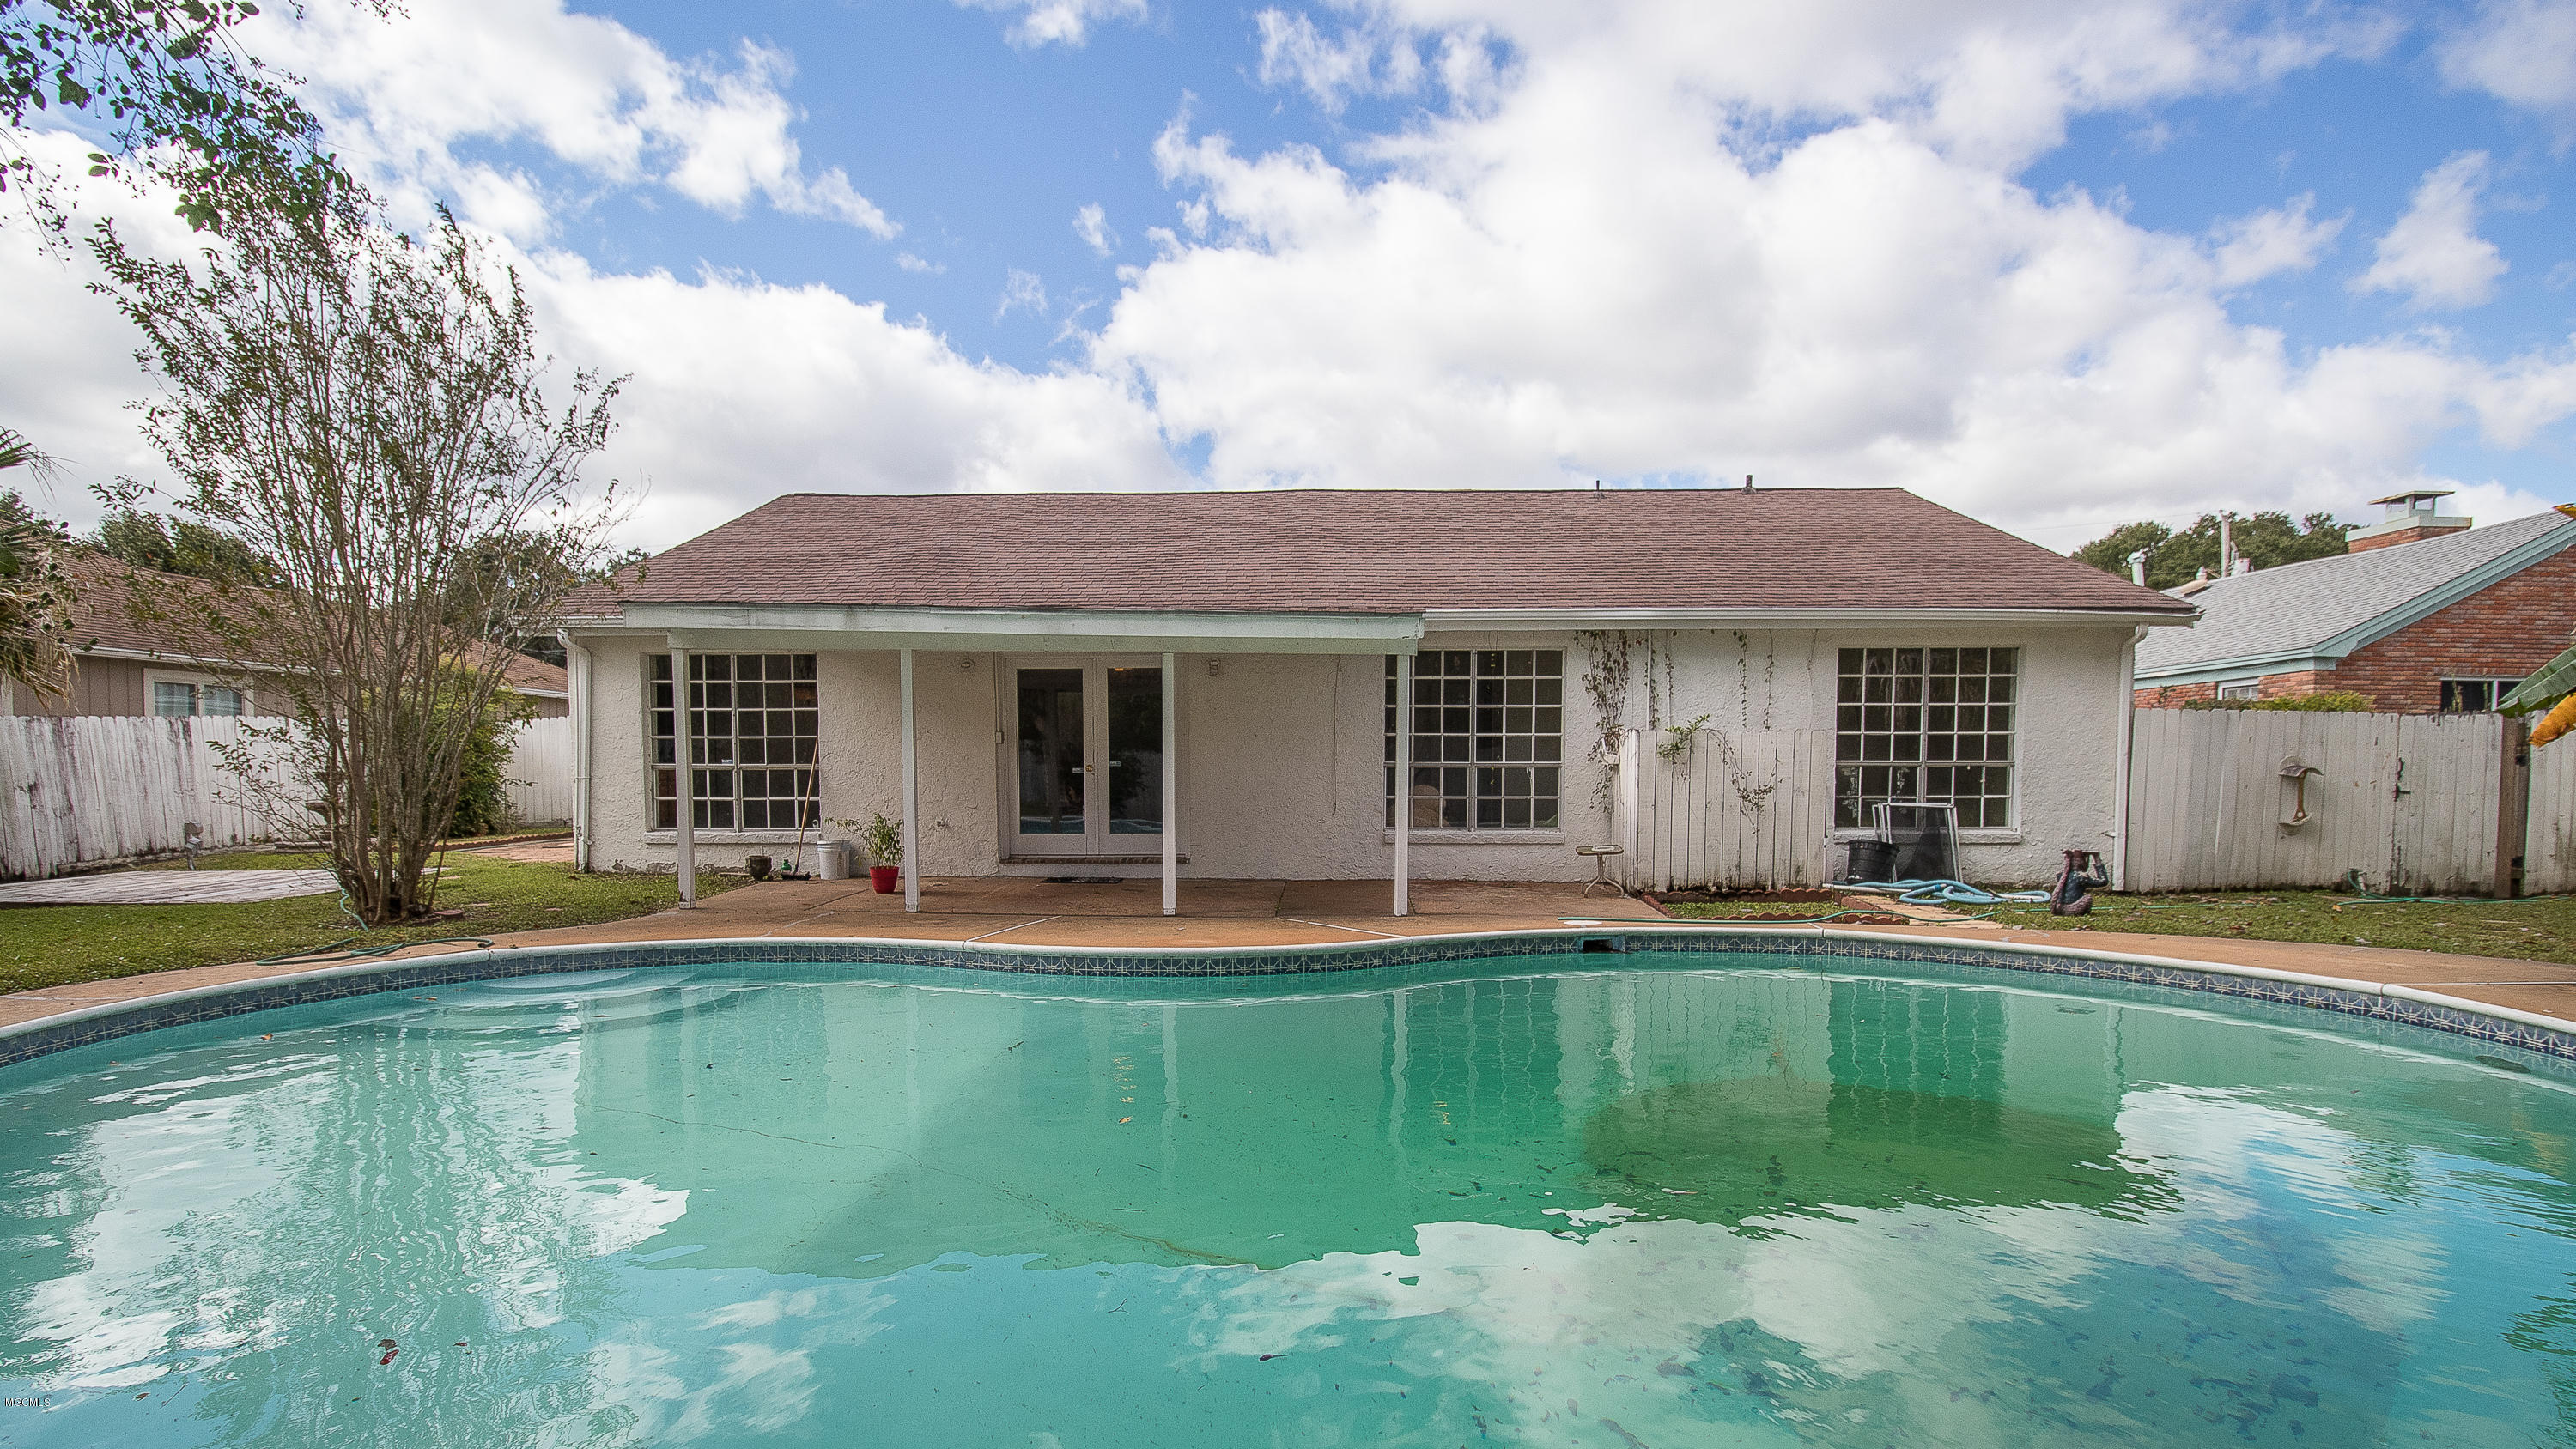 324 Eastview Dr, Biloxi, Mississippi 39531, 3 Bedrooms Bedrooms, ,2 BathroomsBathrooms,Single-family,For Sale,Eastview,340864